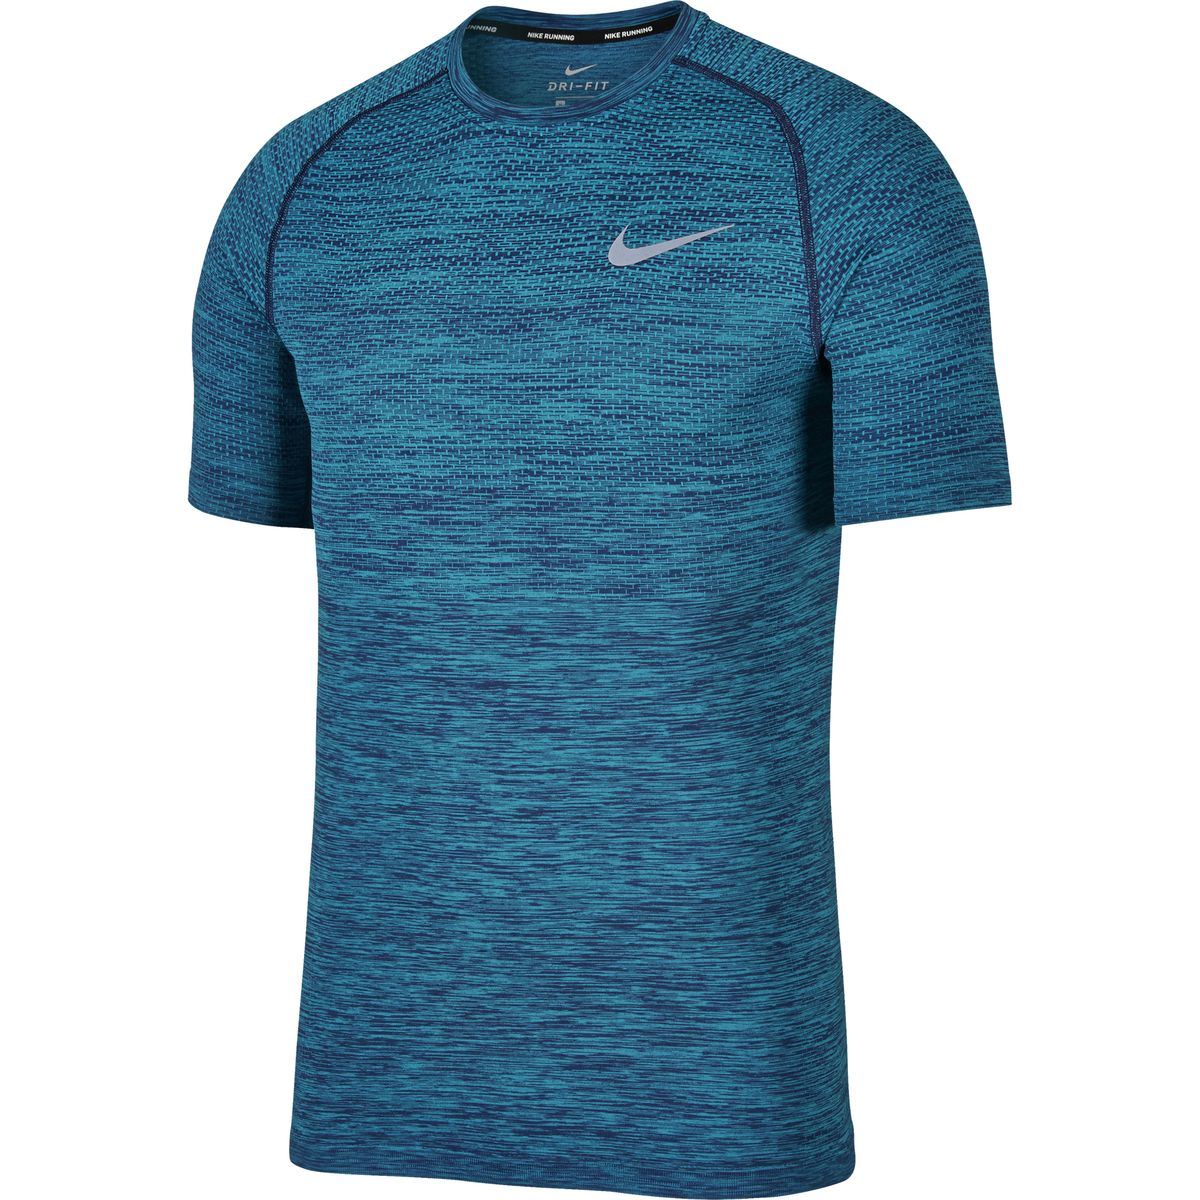 Nike Dri-FIT Knit Shirt - Binary Blue/Light Blue Fury